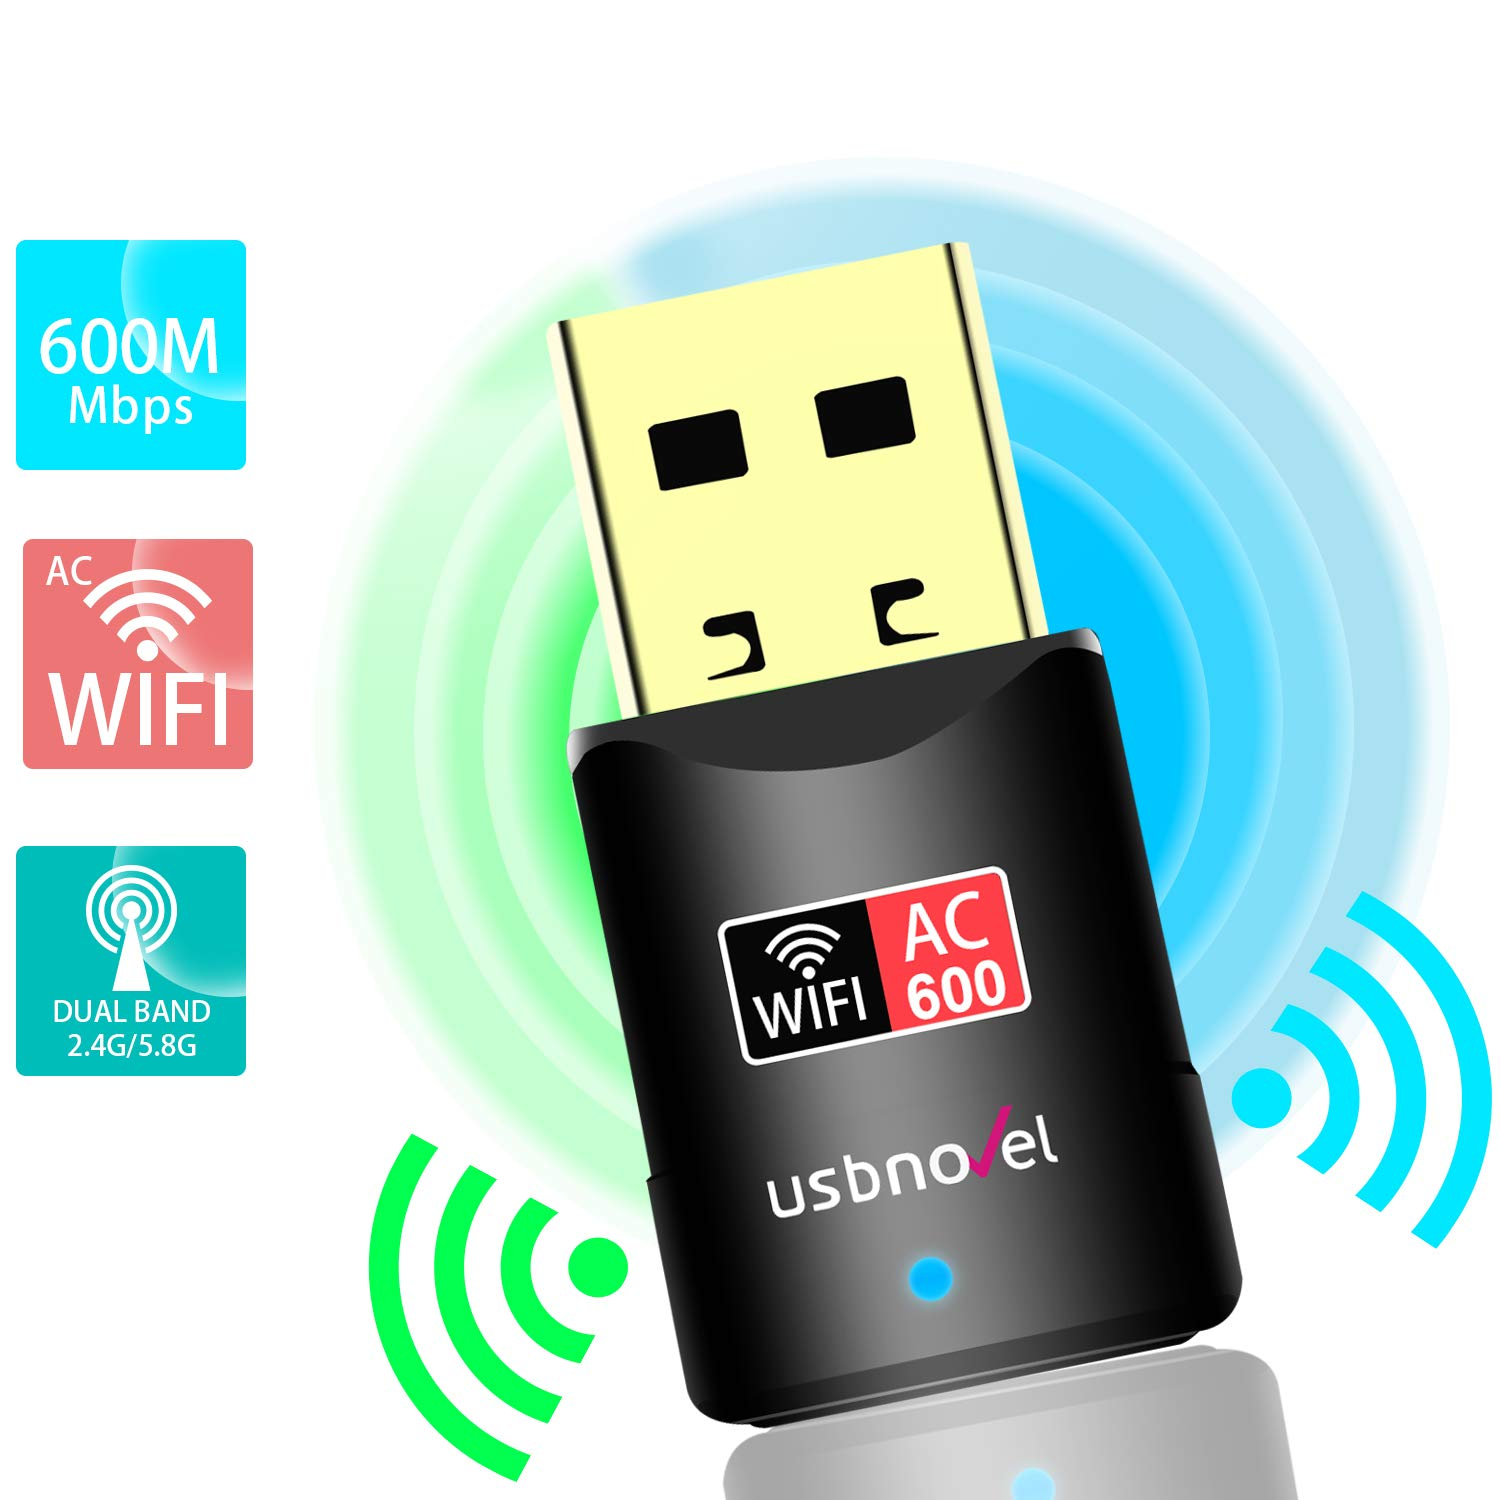 USB WiFi Adapter- 600Mbps USB Wireless Network WiFi Dongle Adapter for PC/Desktop/Laptop/Mac(Updated Version), Dual Band 2.4G/5G 802.11 ac,Support Windows 10/8/8.1/7/Vista/XP/2000, Mac OS 10.6-10.14